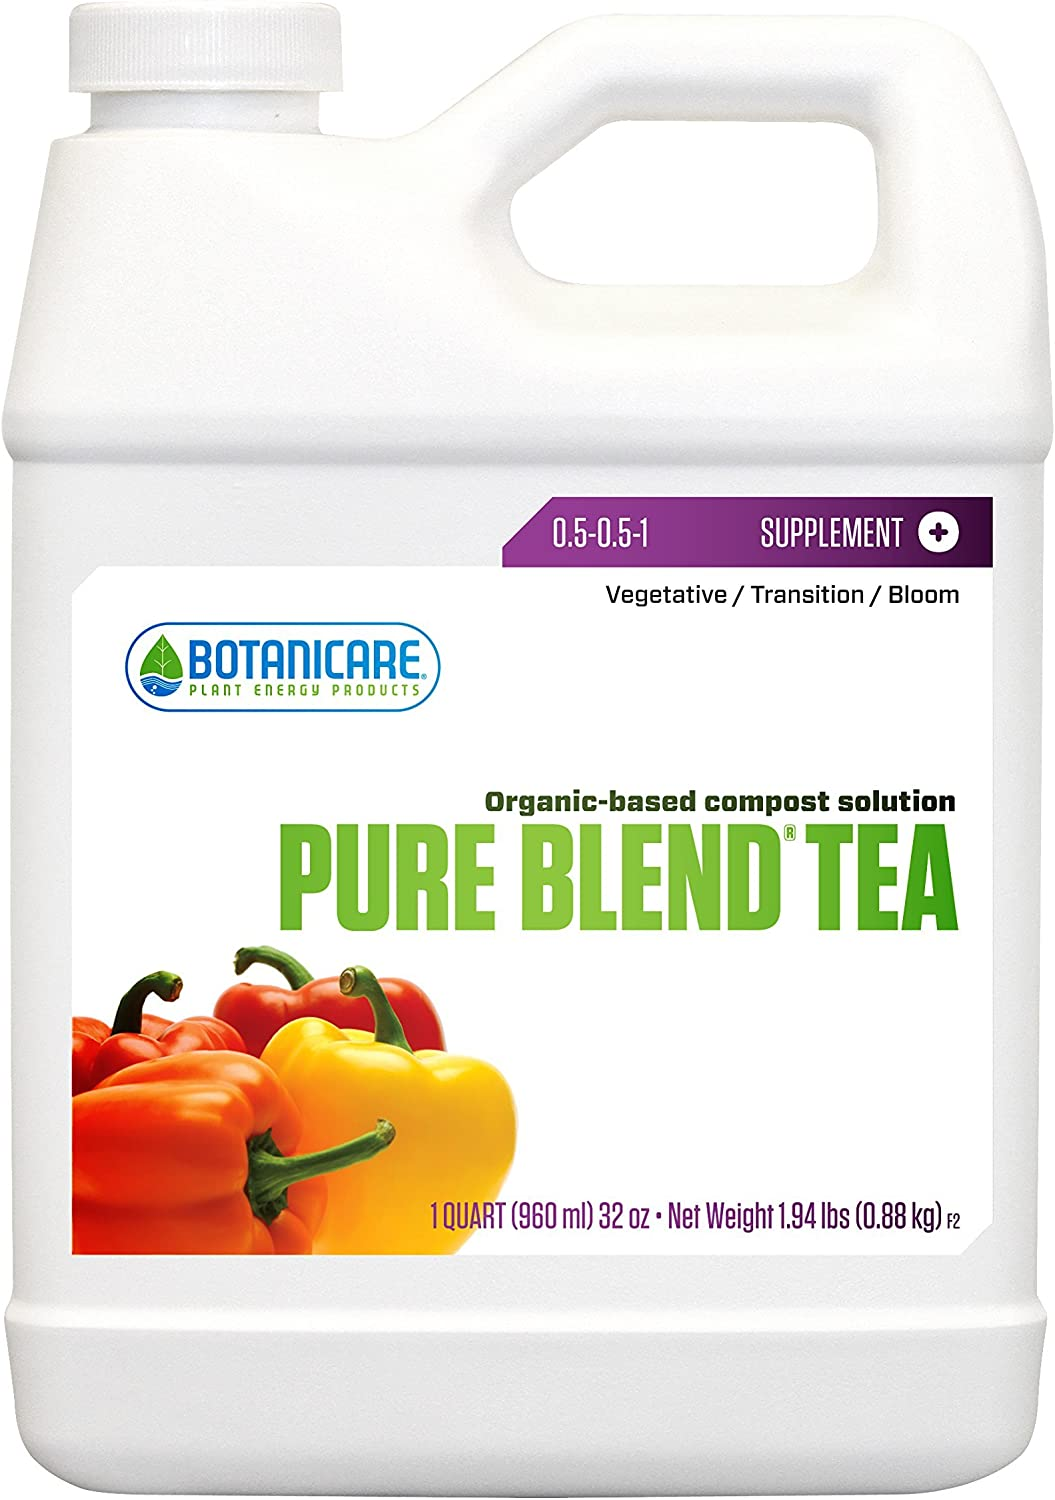 Botanicare PURE BLEND TEA Organic-Based Compost Solution, 1-Quart